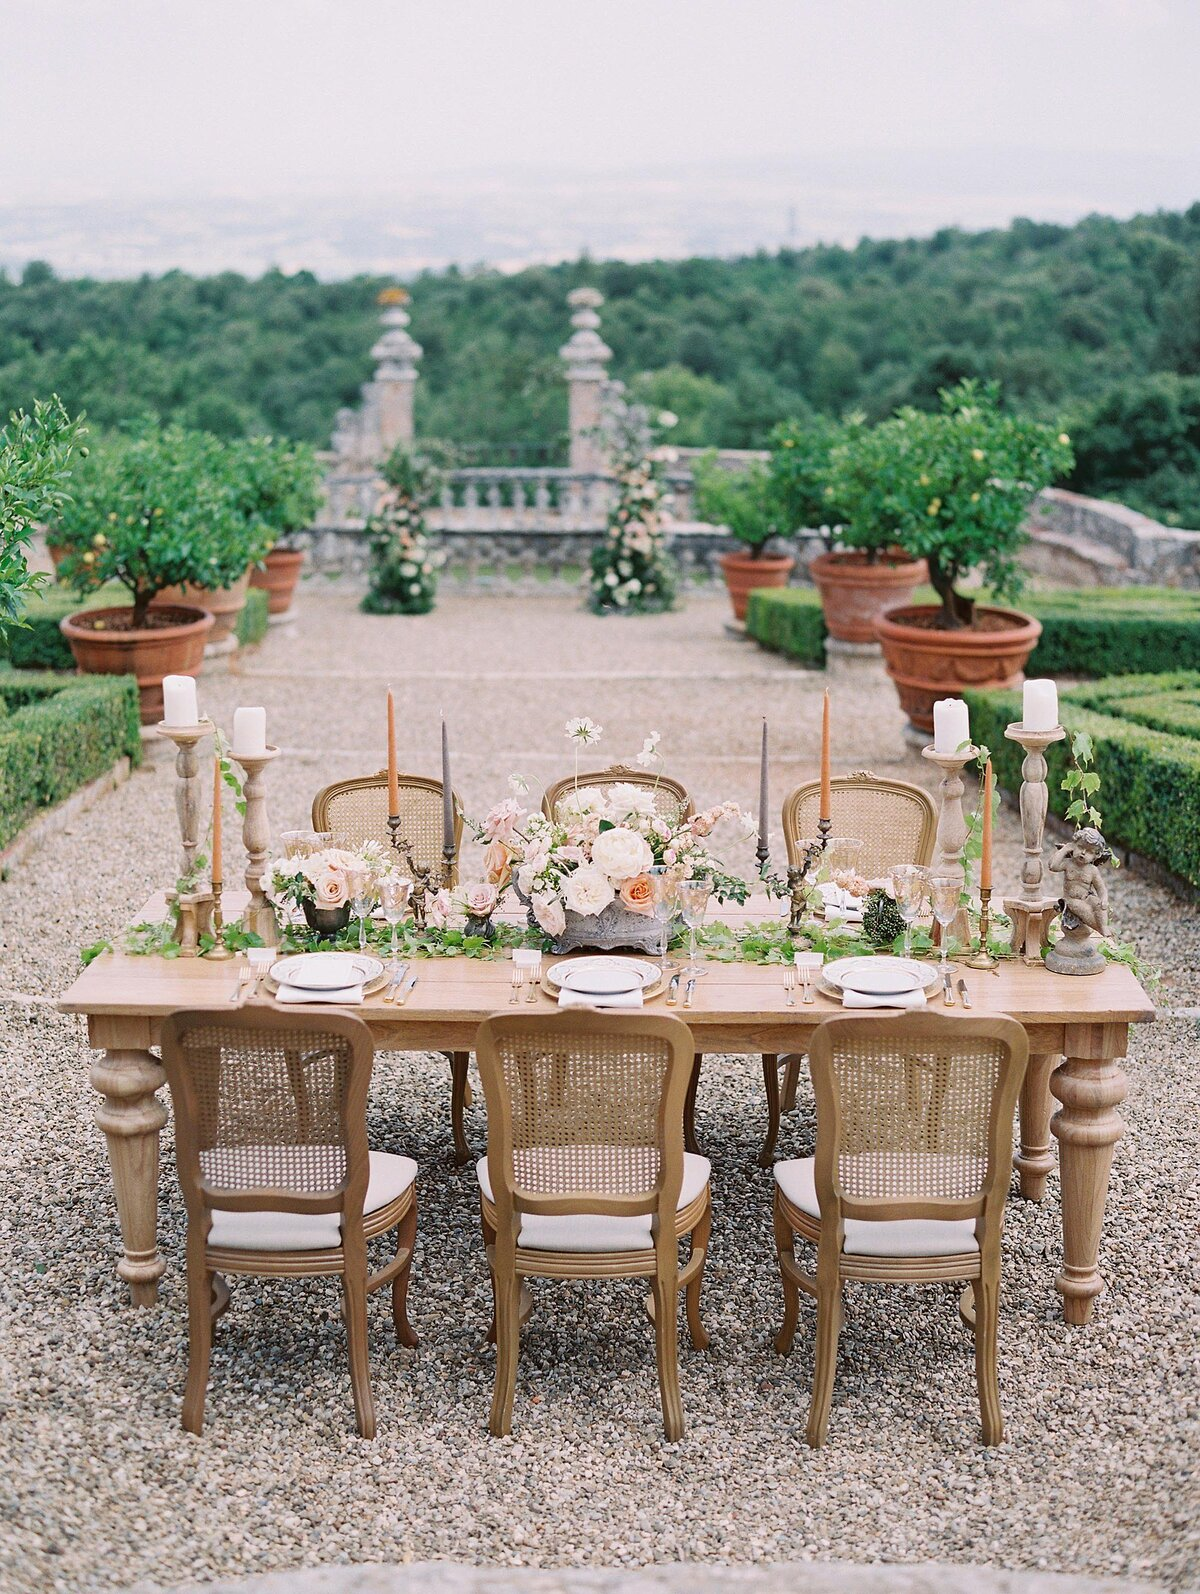 NKT-Events_Wedding-Inspiration-Editorial_Castello-di-Celsa_0227